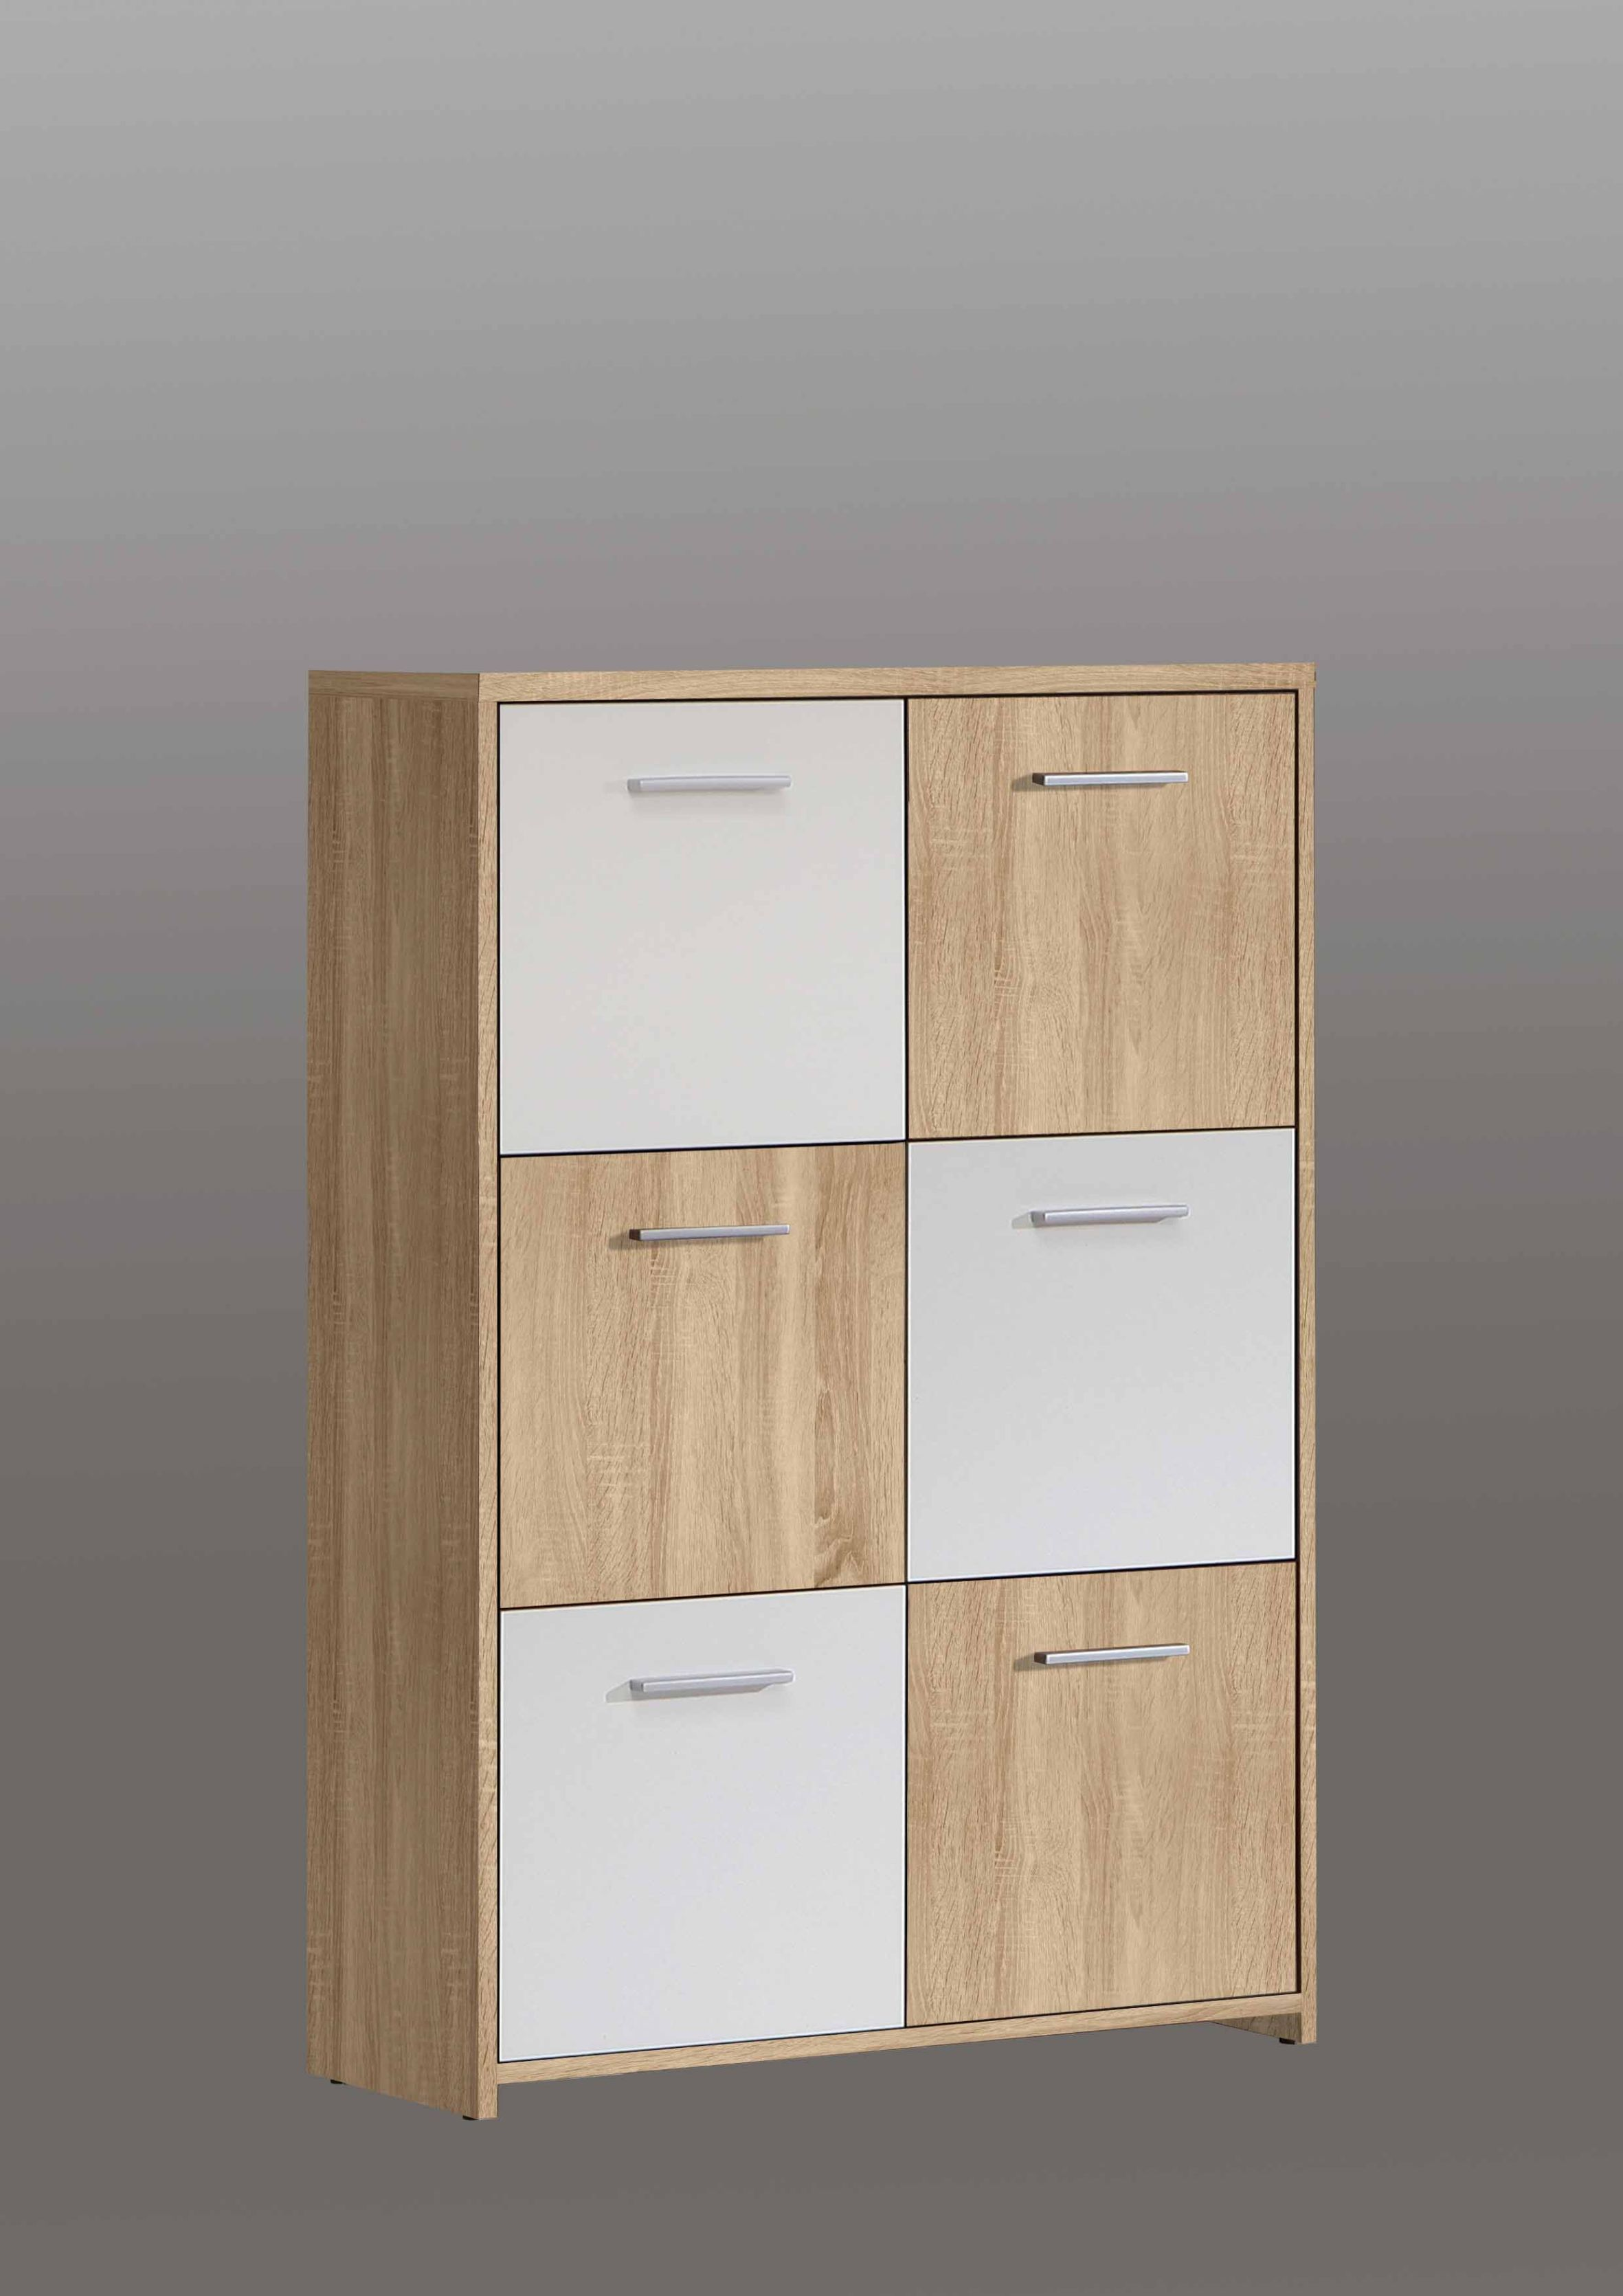 Quadro highboard f r esszimmer kommode for Kommode esszimmer